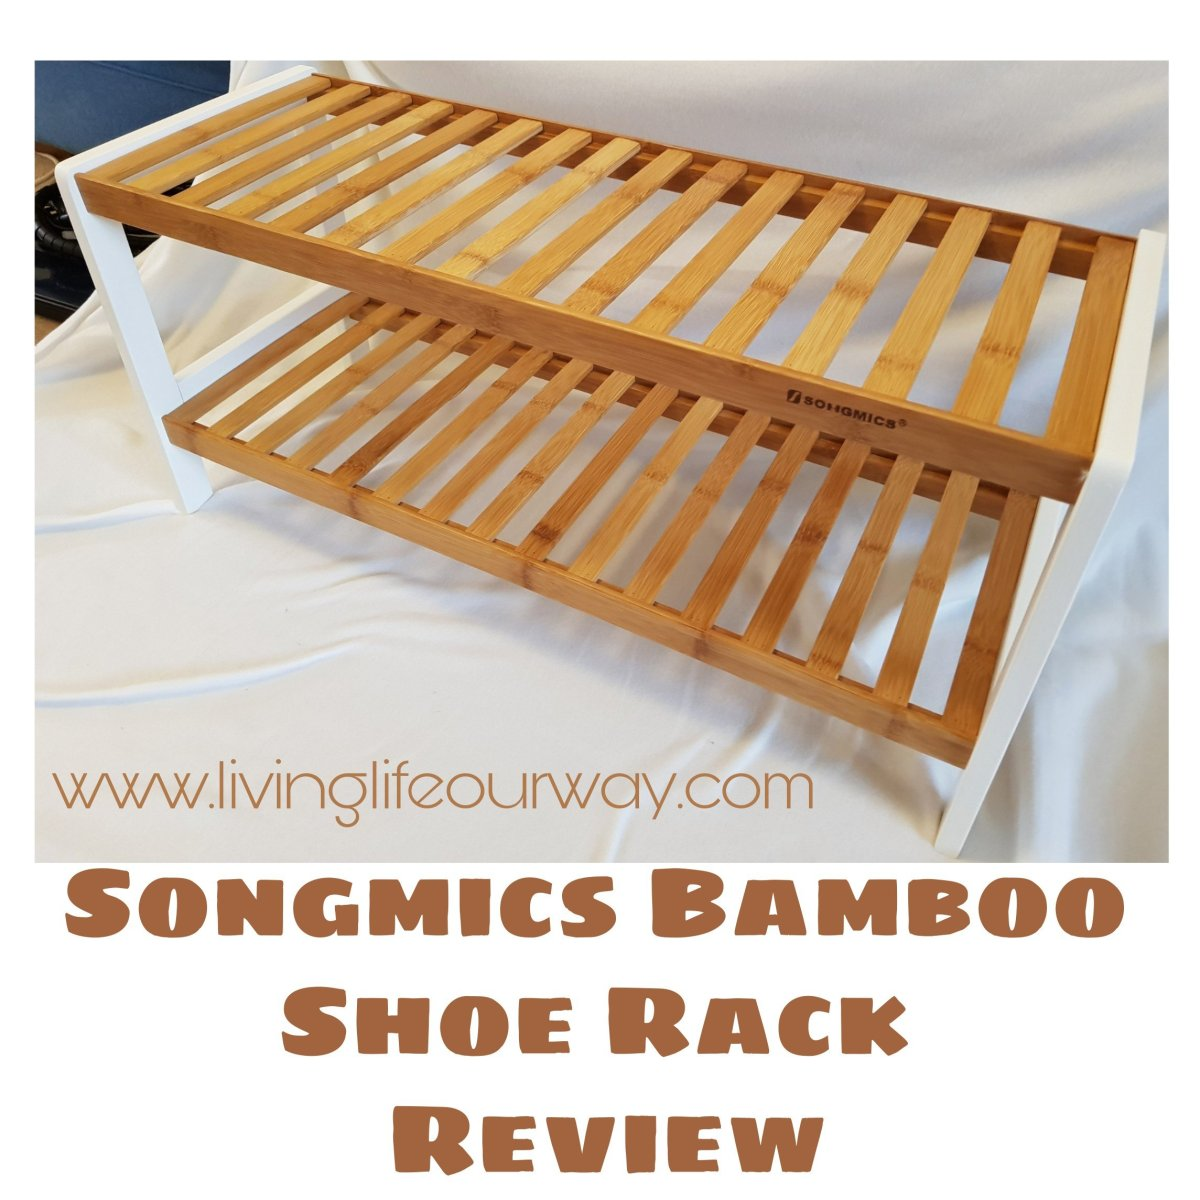 Songmics Bamboo Shoe Rack: Review and Giveaway